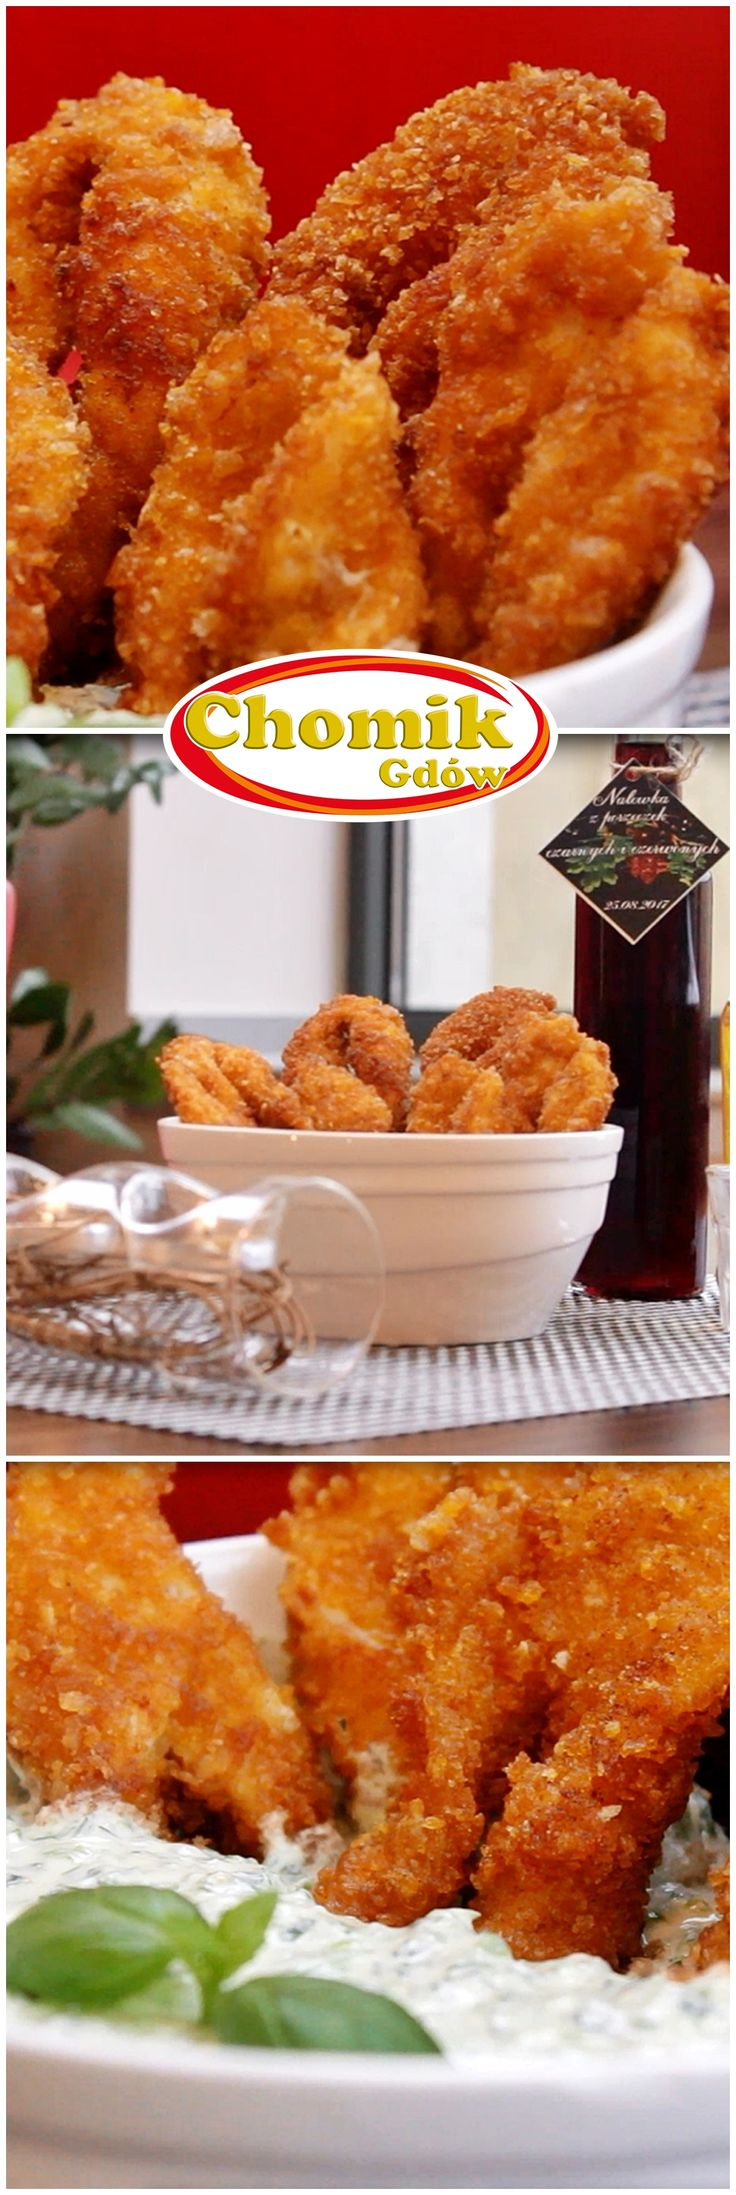 Crispy angel wings - made from chicken - with a herbal dip